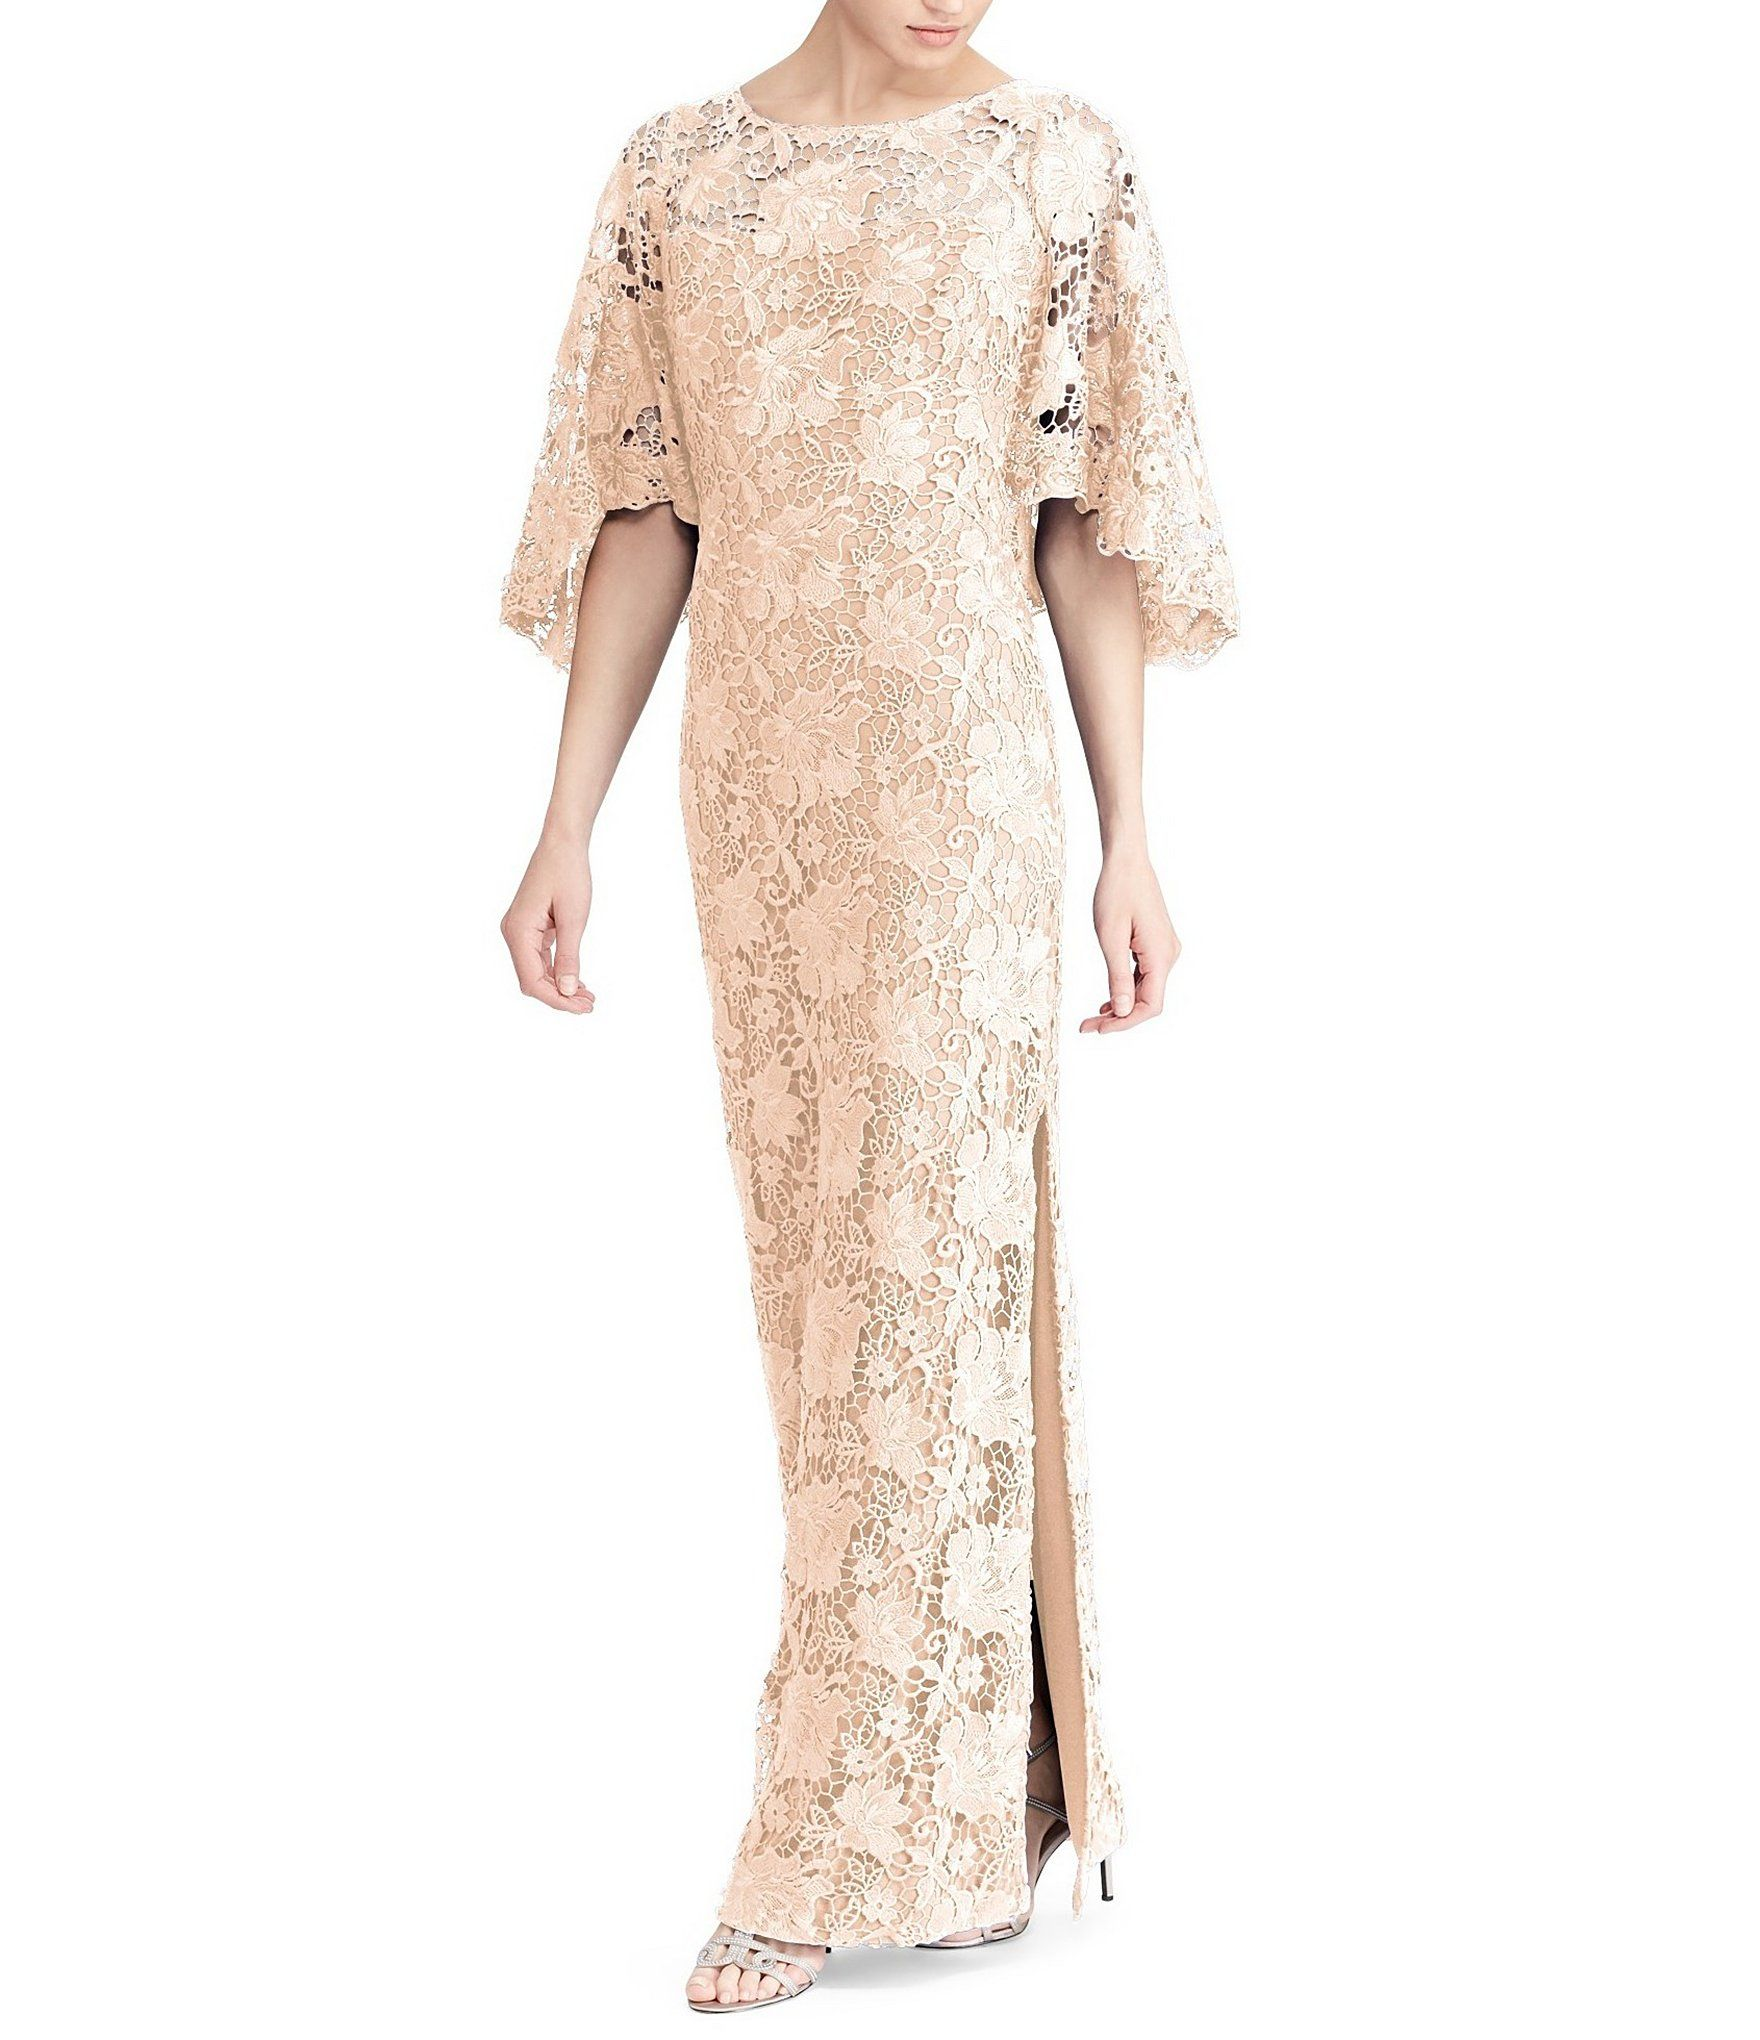 990cd1d374ad Lauren Ralph Lauren Blush Pink Metallic Lace Flutter Bell Sleeve Gown  #Dillards